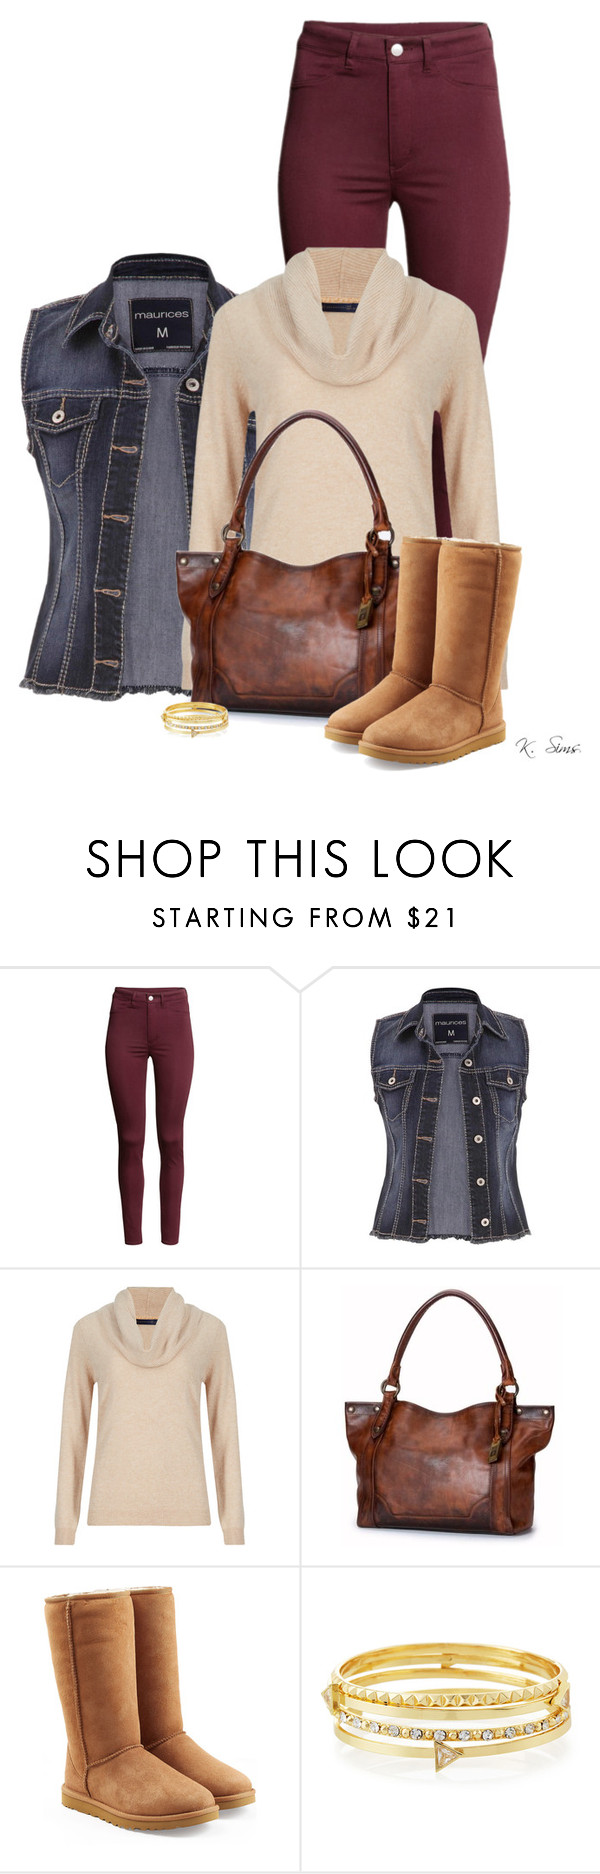 """""""Uggs aren't my favorite, but..."""" by ksims-1 ❤ liked on Polyvore featuring H&M, maurices, M&S Collection, Frye, UGG Australia and Lydell NYC"""